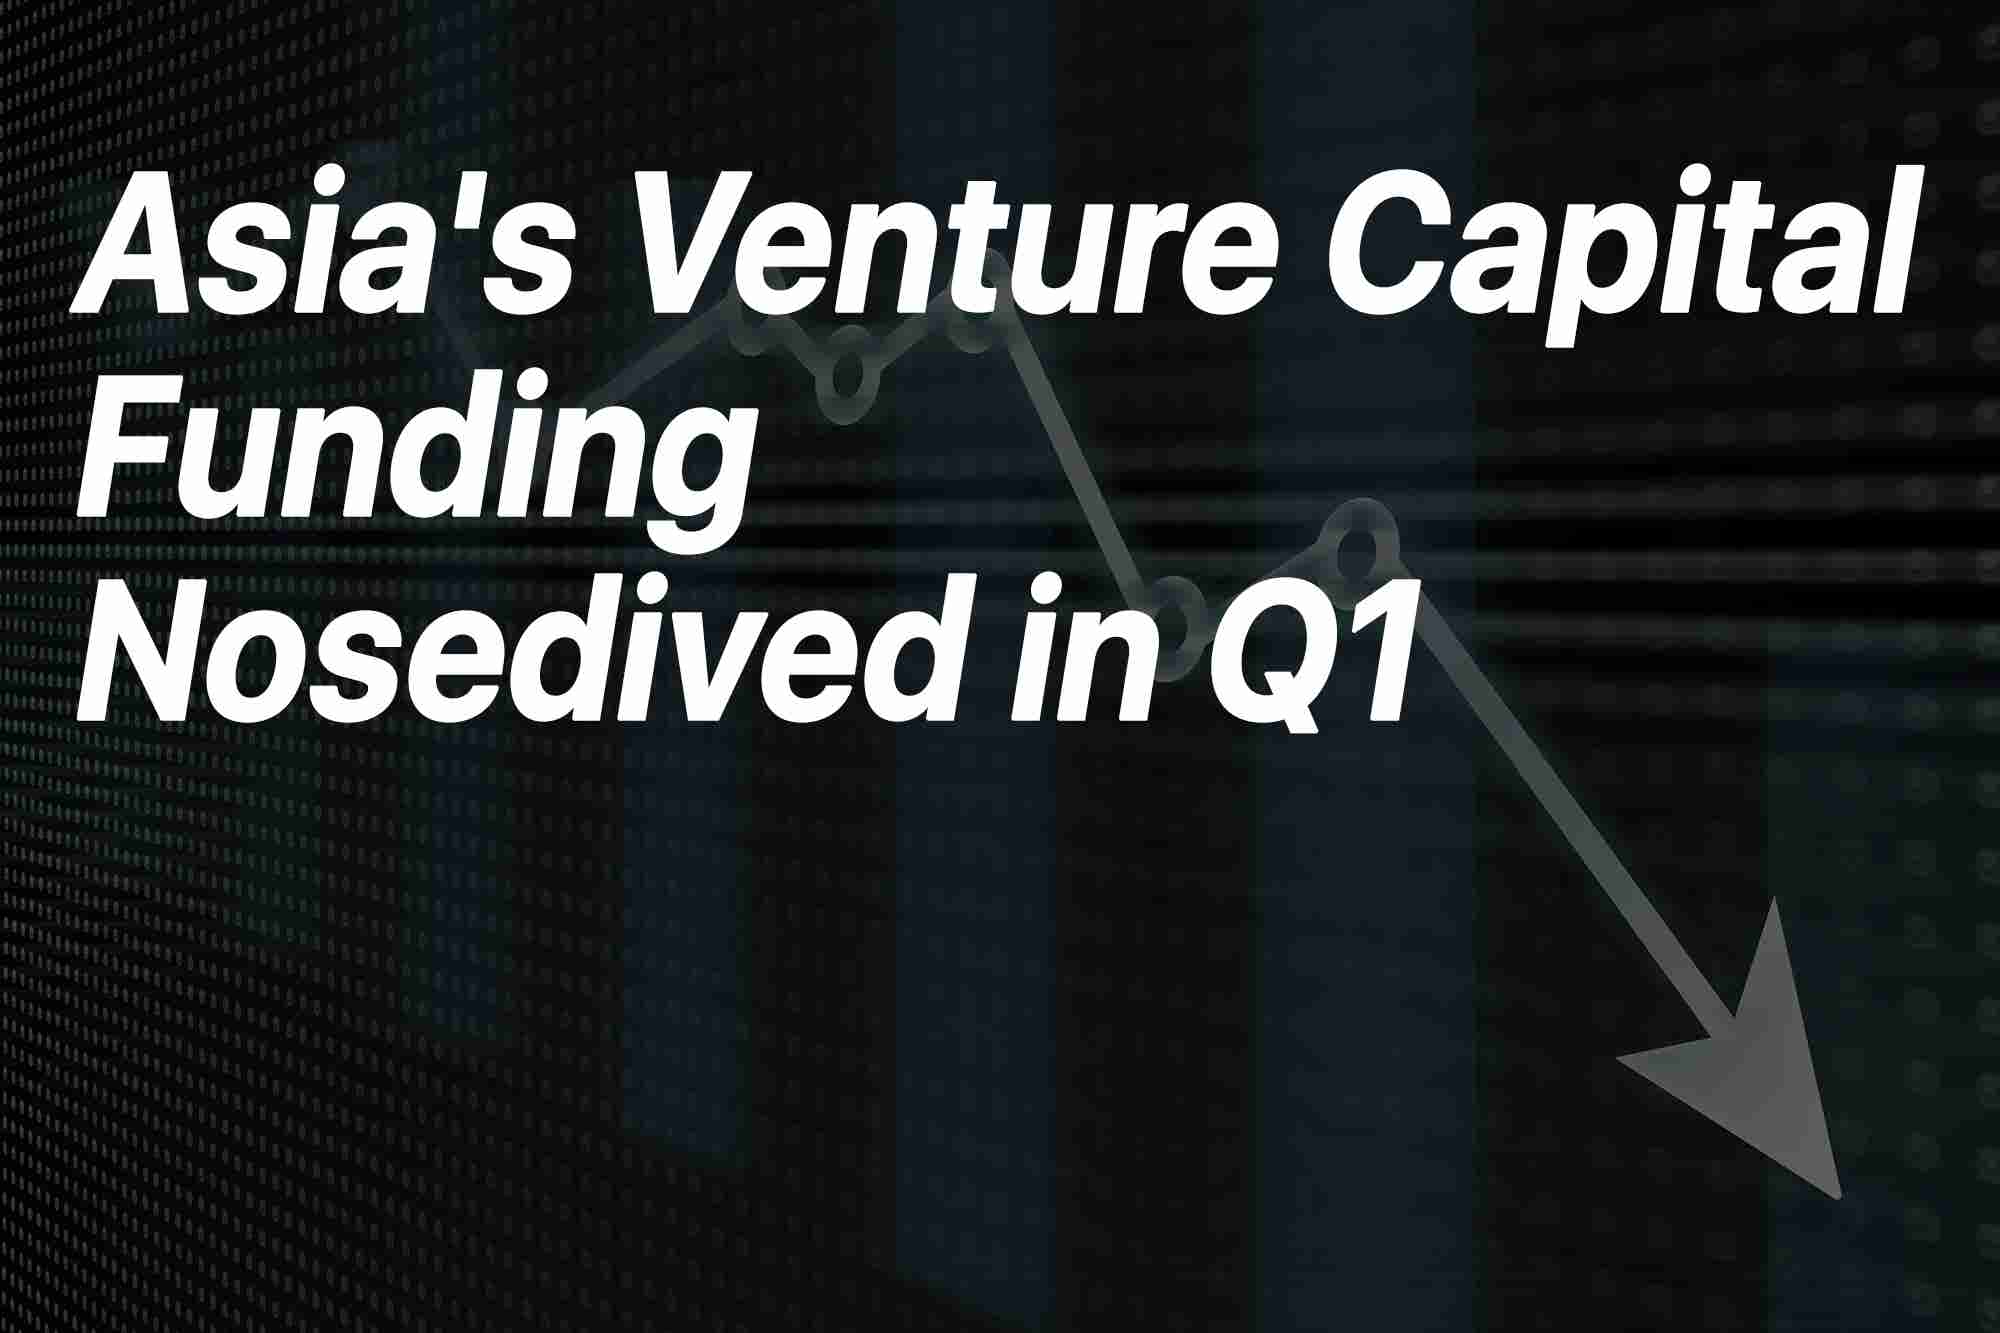 Friday Flashback: Asia's Venture Capital Funding Nosedived in Q1